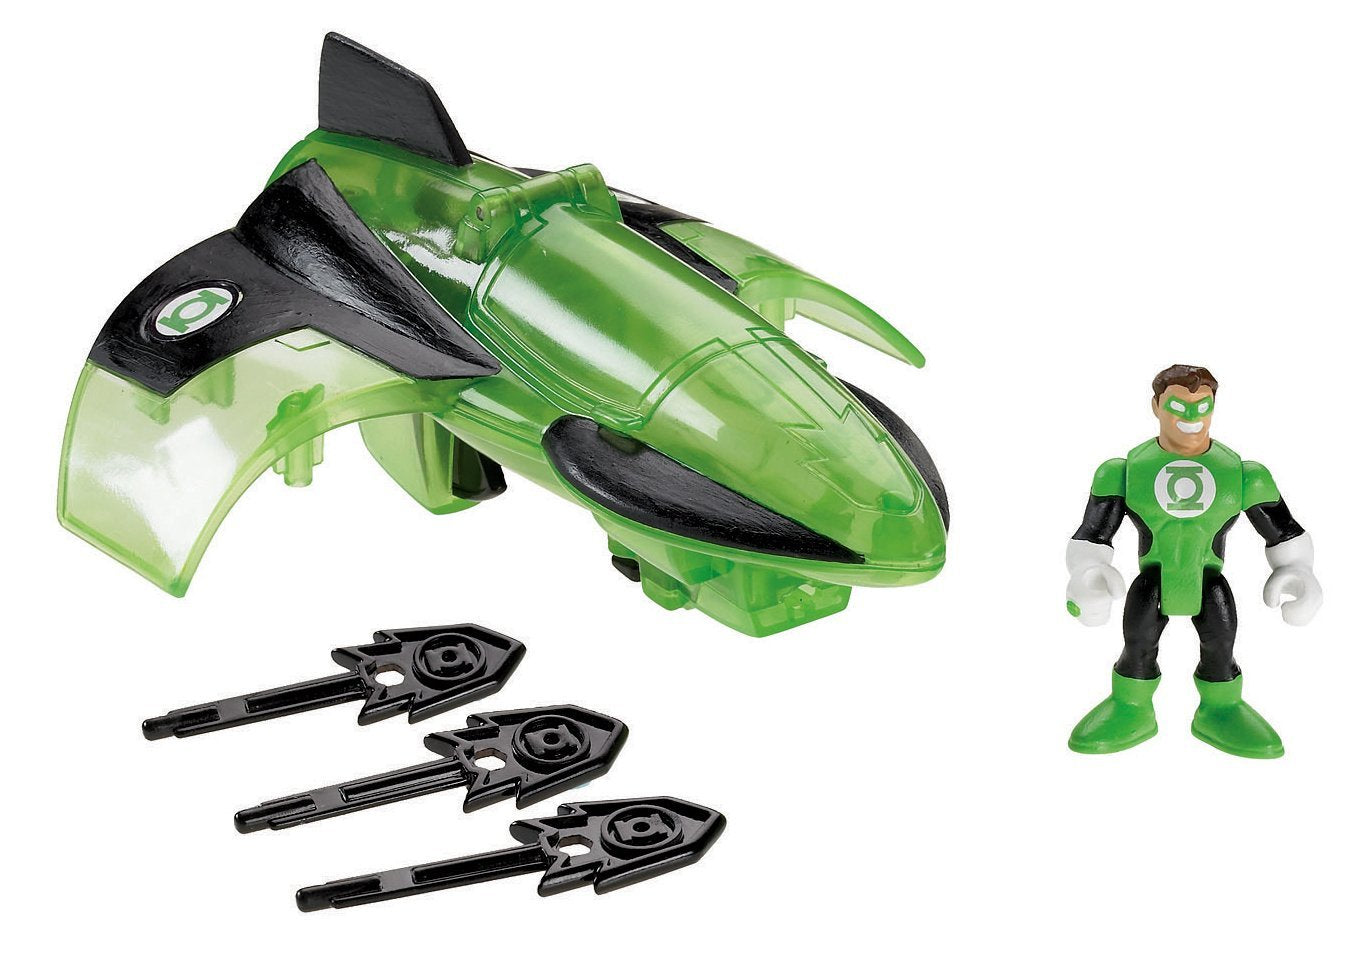 Fisher-Price Imaginext DC Super Friends, Green Lantern Jet R5514